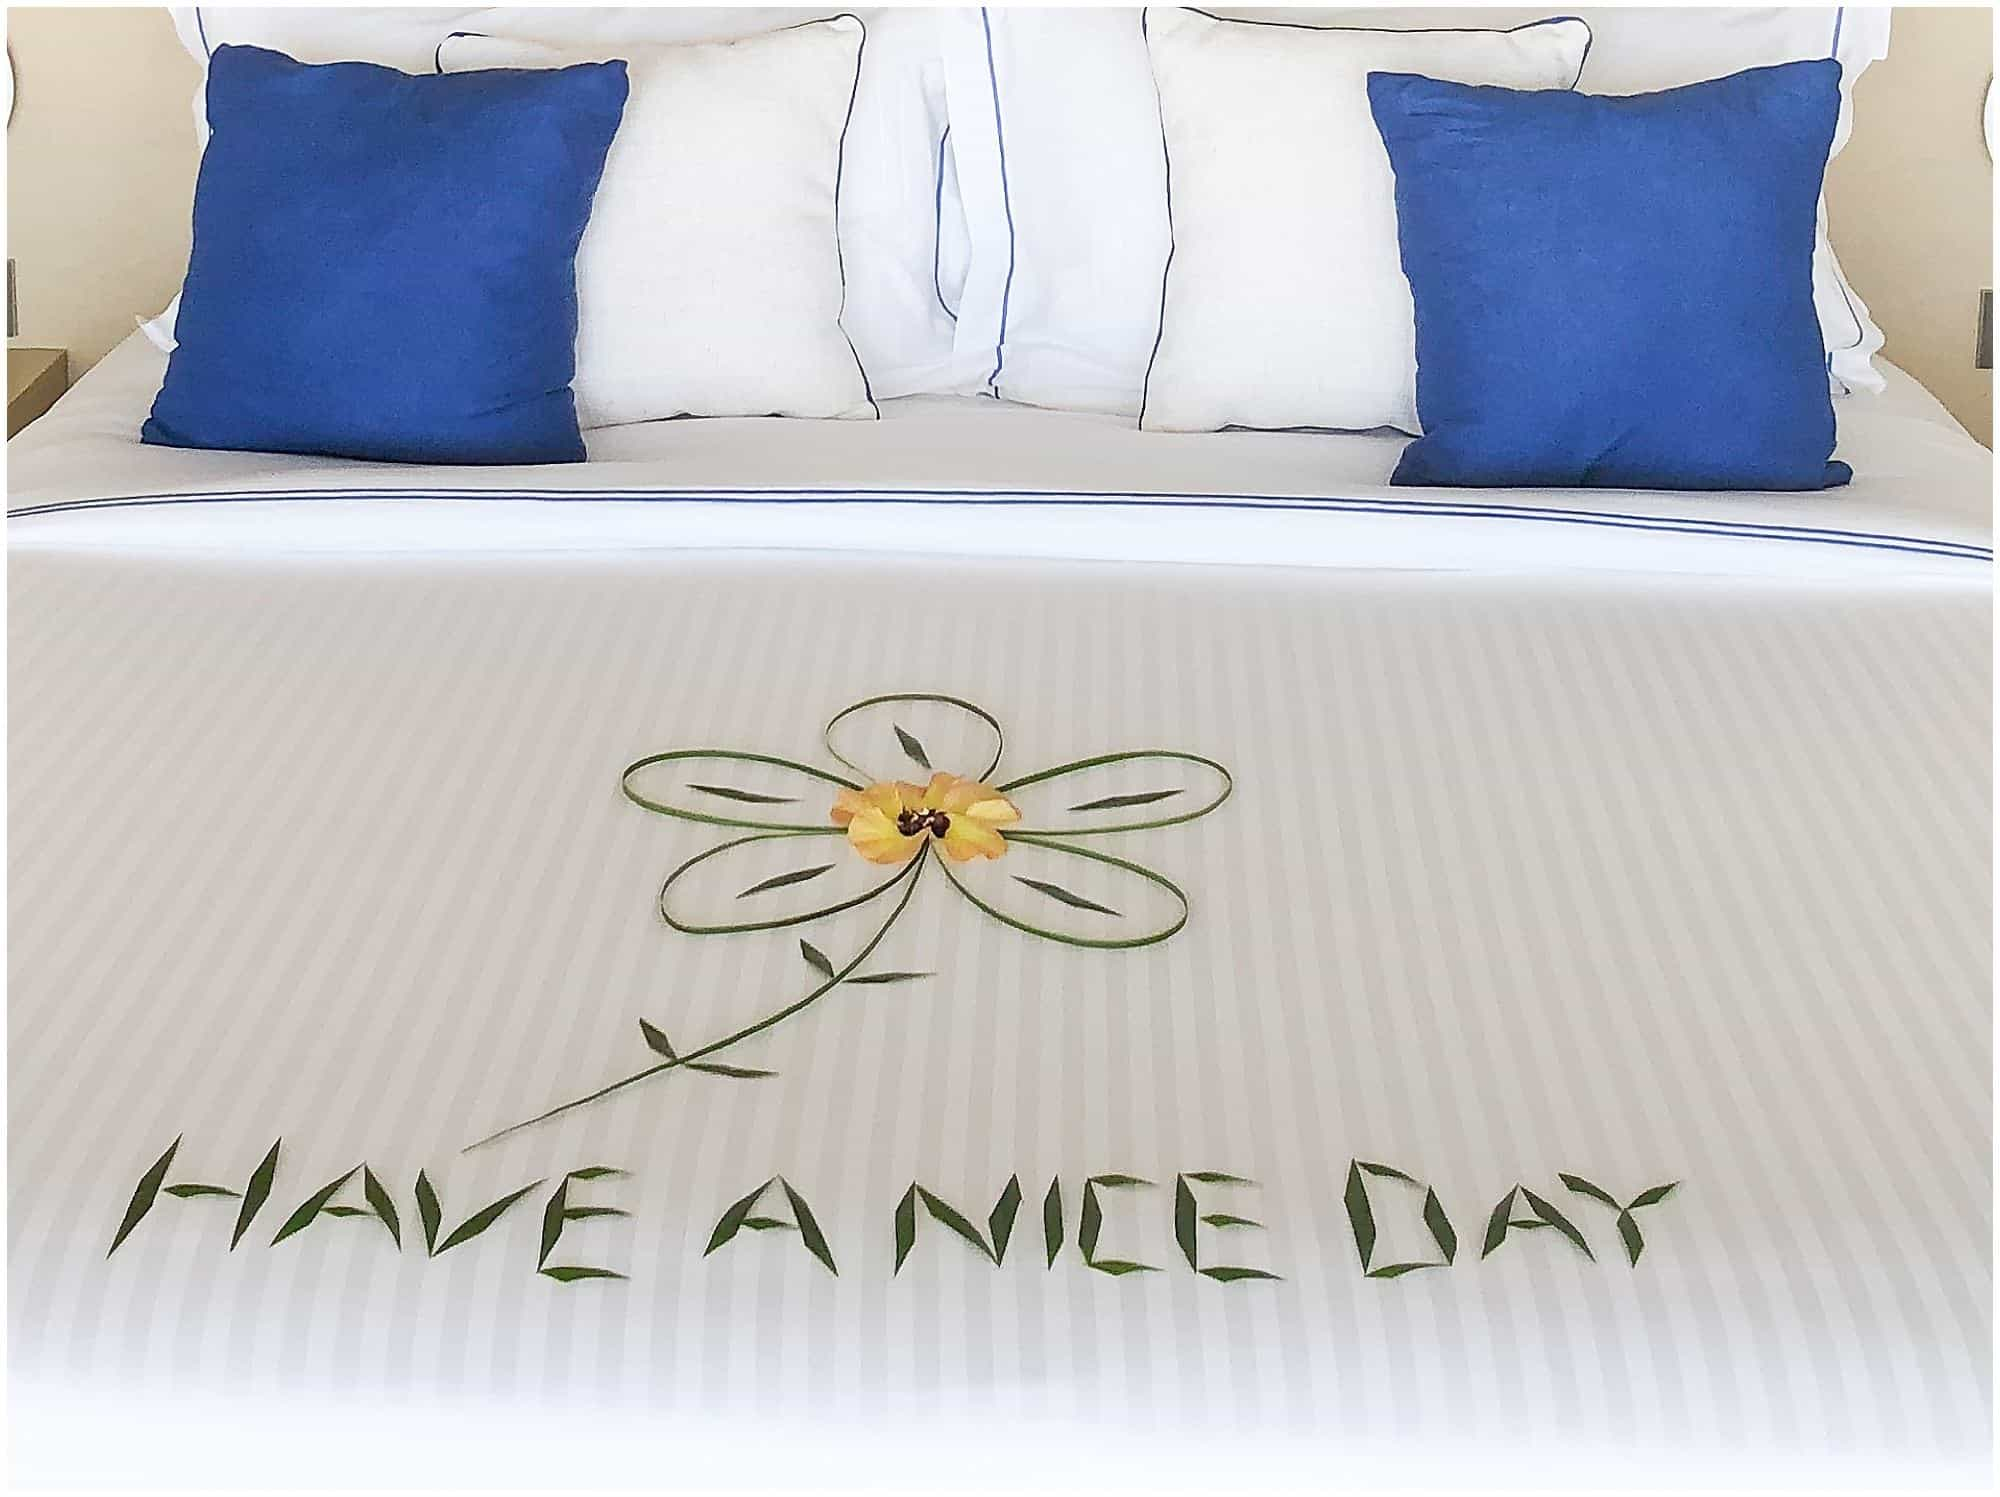 Have a nice day written on hotel bed